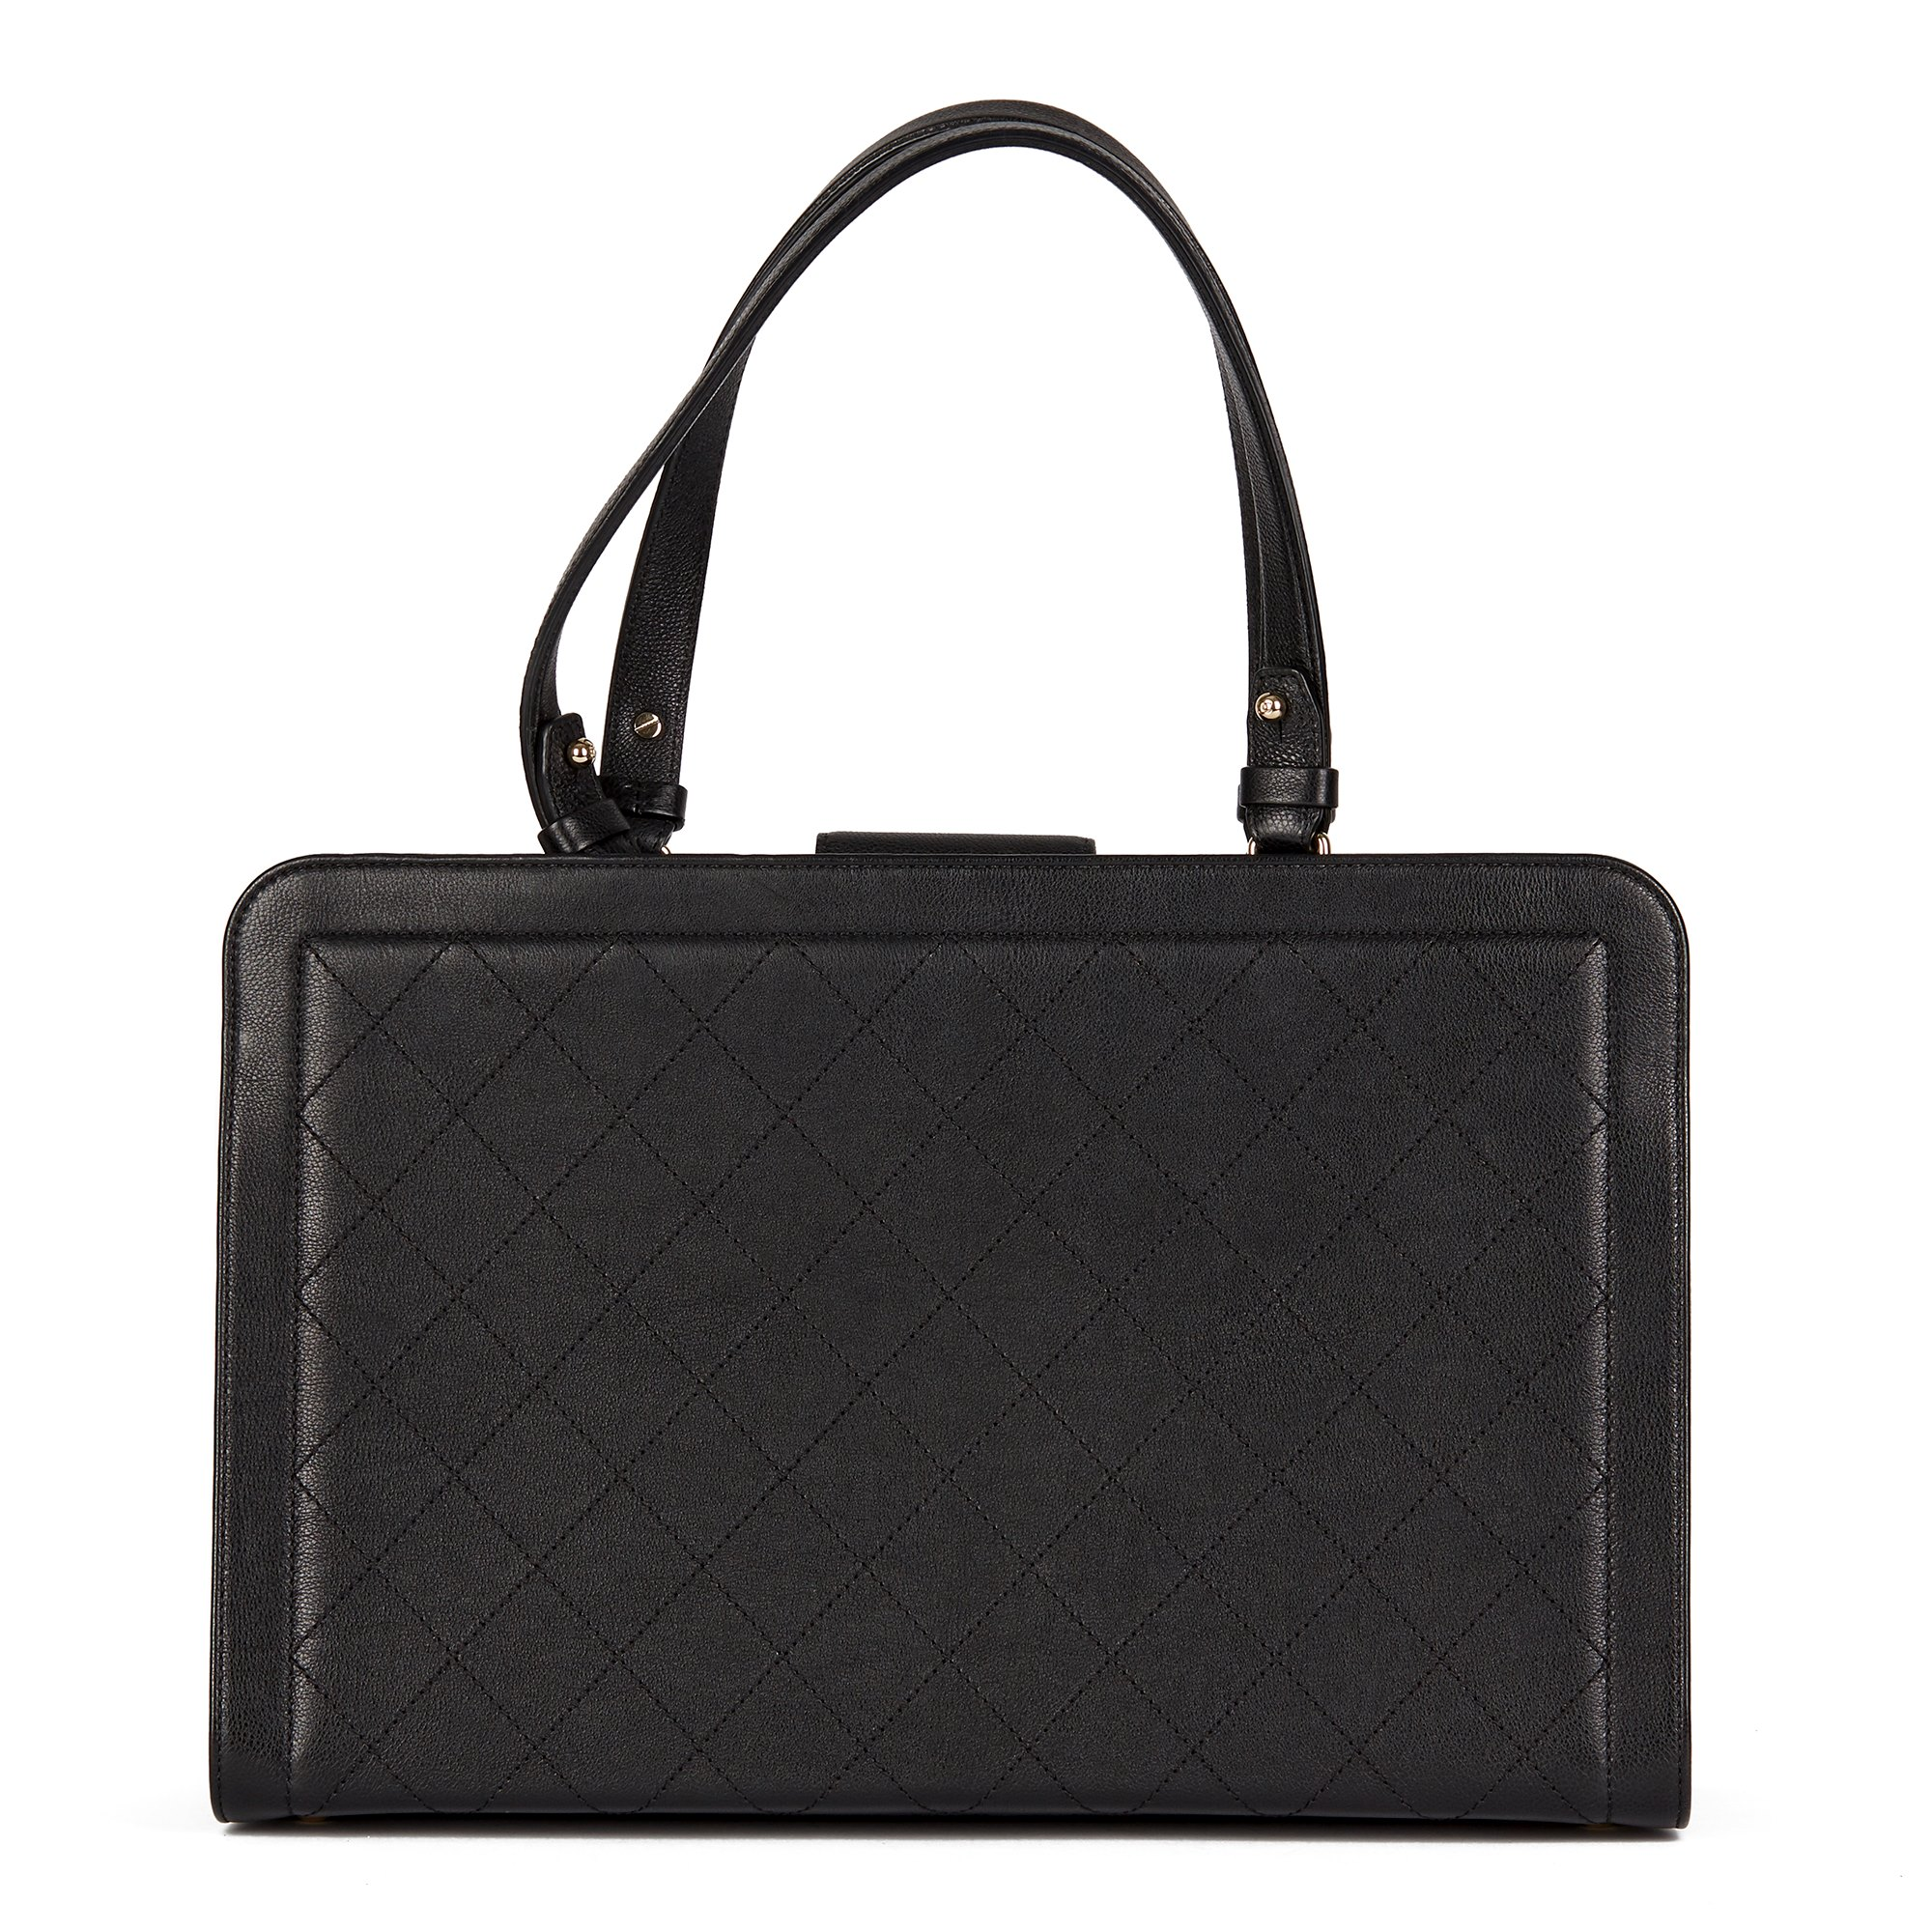 Chanel Black Quilted Calfskin Leather Large Label Click bidping Tote - Image 4 of 11